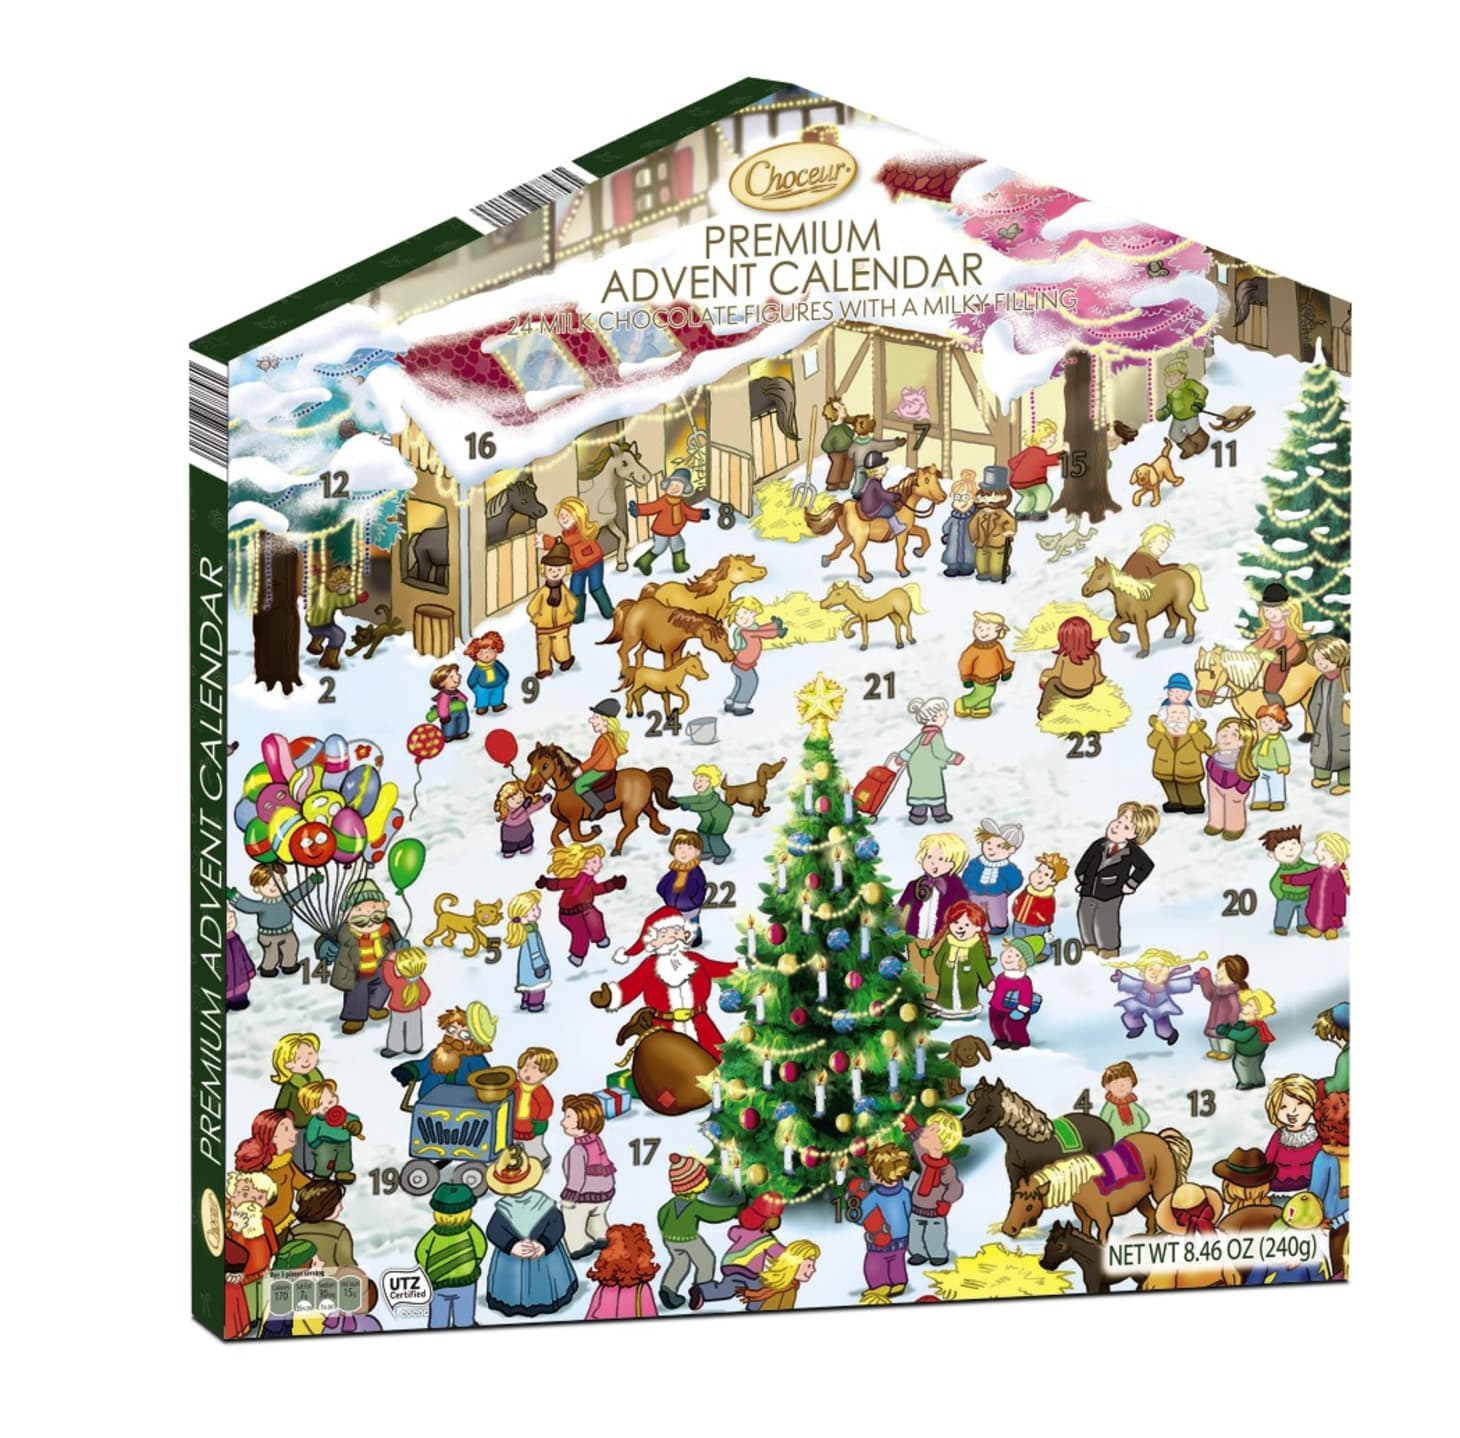 Countdown To 25 Days Of Christmas 2019.Aldi S Wine And Cheese Advent Calendars Are Back Plus A Few